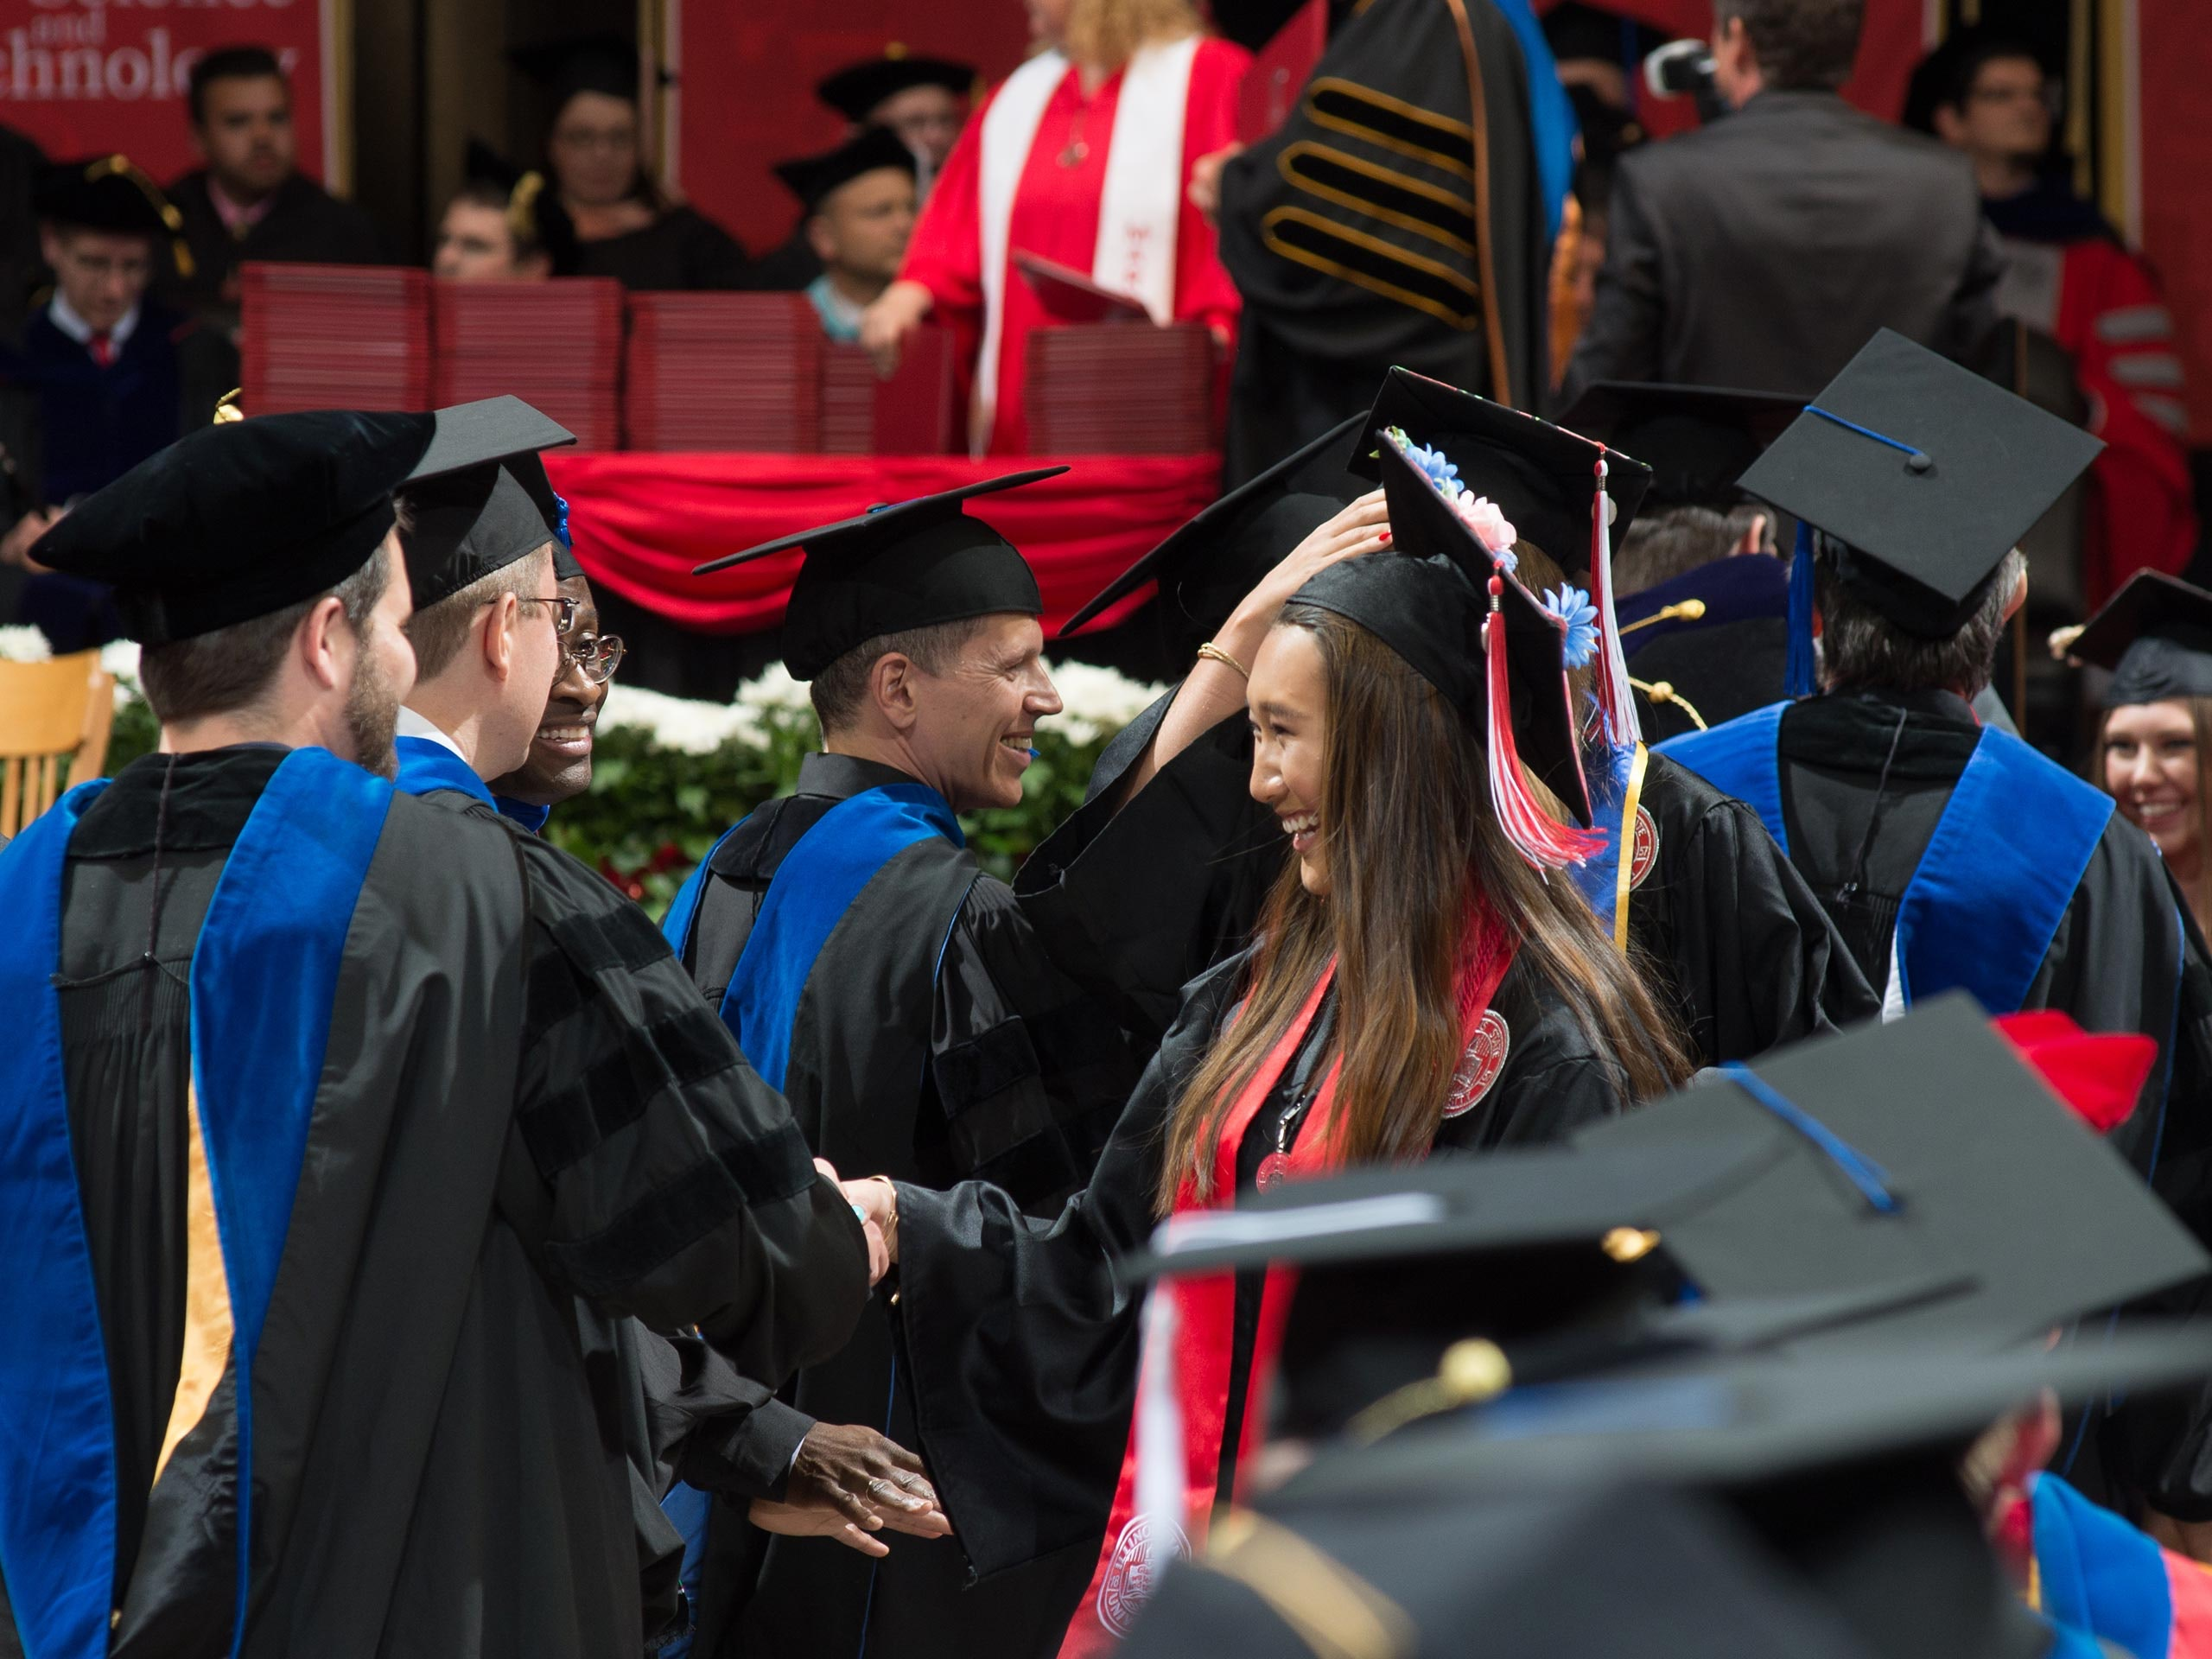 Female student shaking hands of faculty after receiving her diploma on stage.